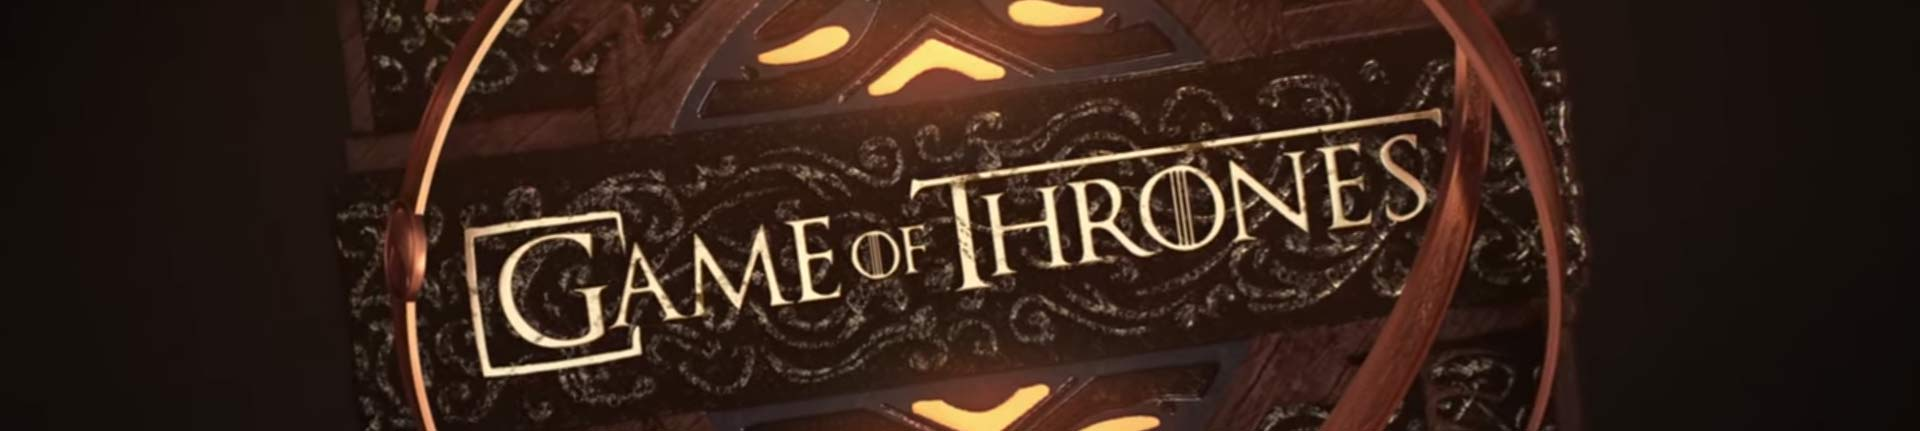 Xbox France has a ridiculous Game Of Thrones-themed Xbox One to give away